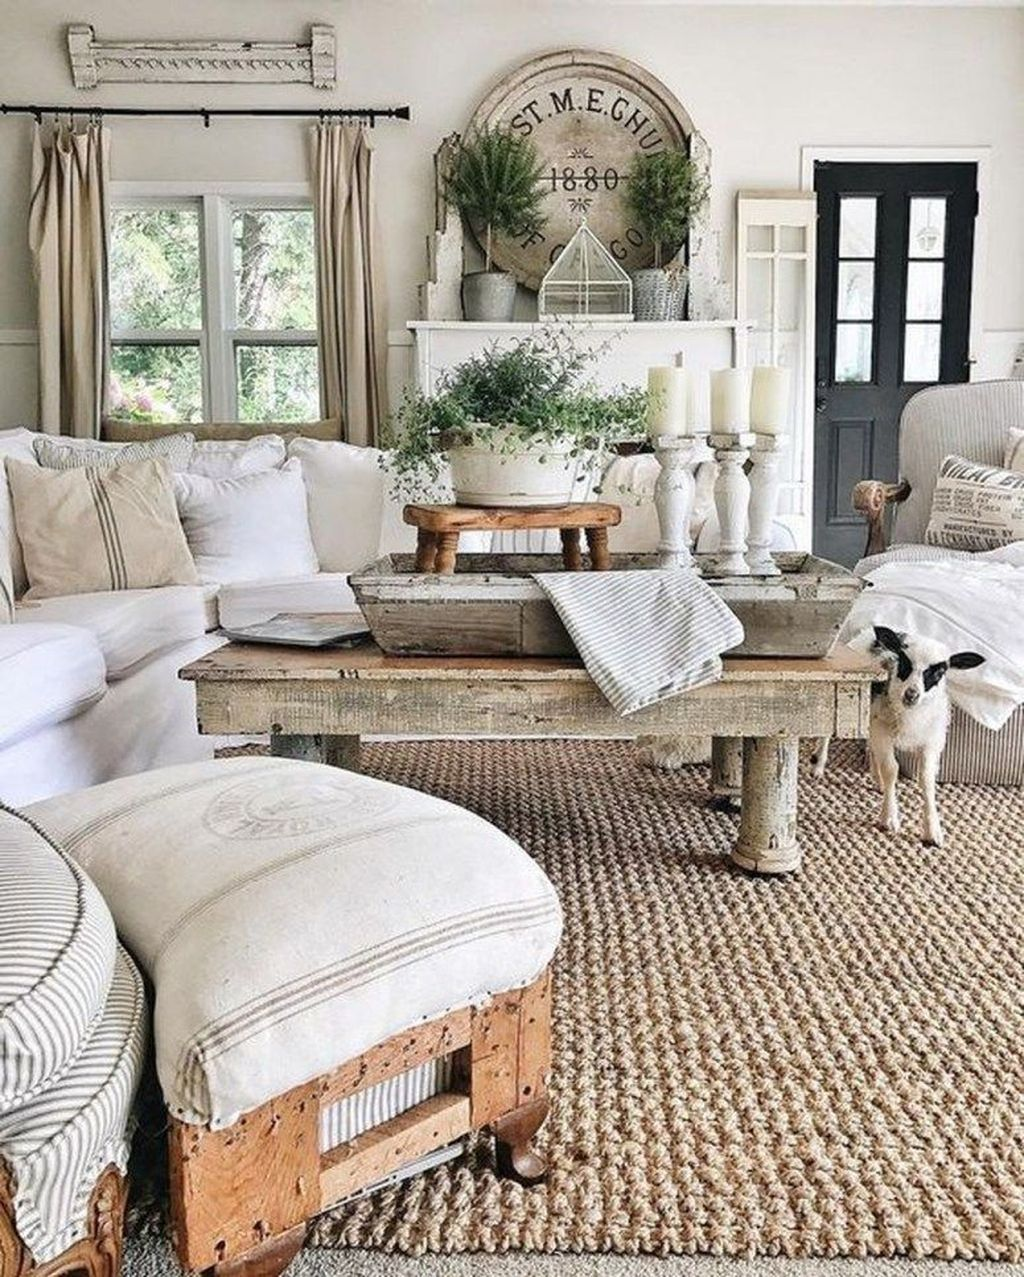 38+ Decorating ideas for living room info